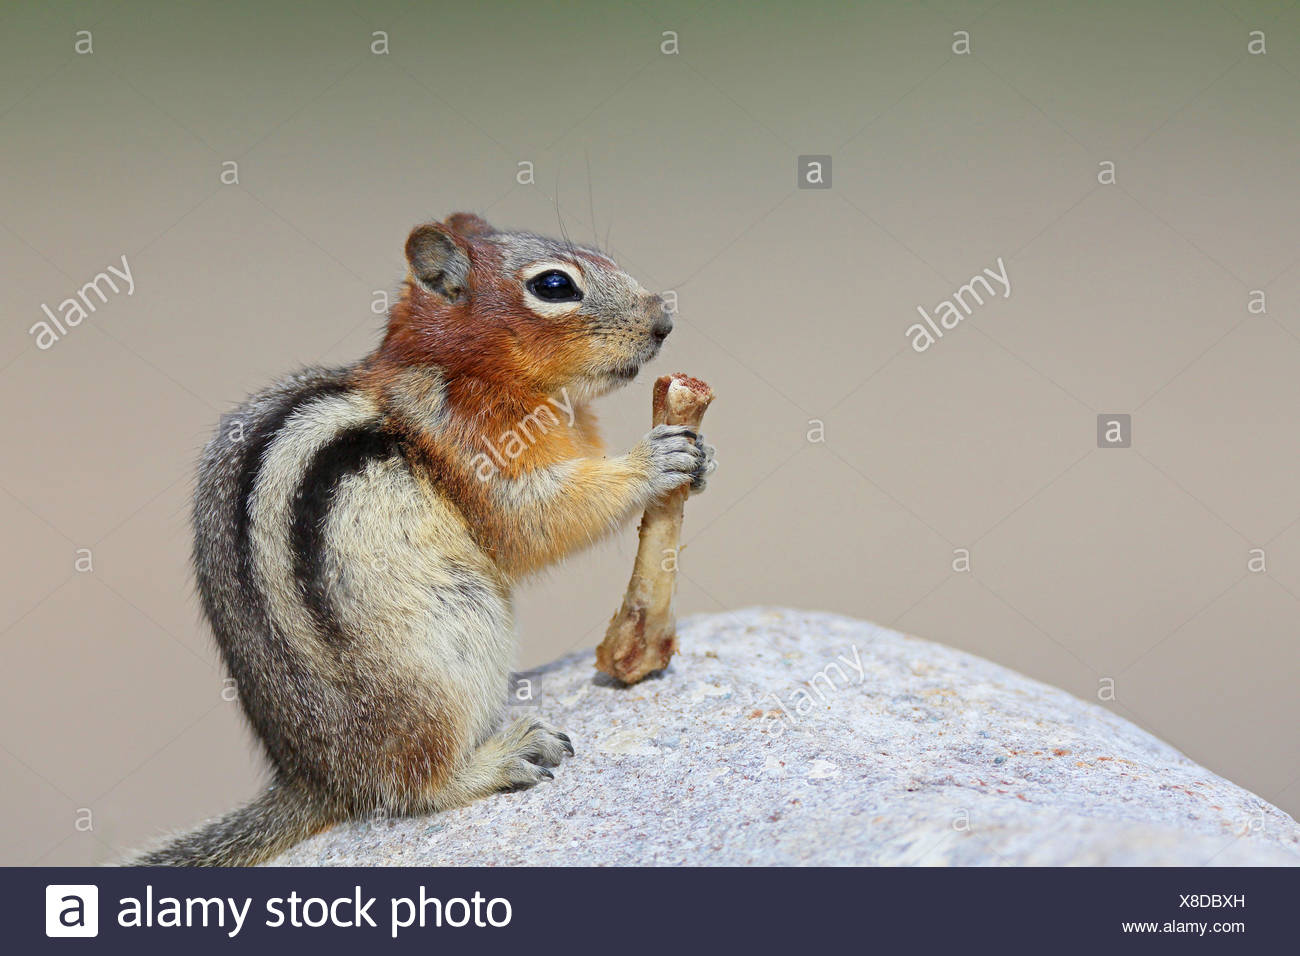 golden-mantled ground squirrel (Spermophilus lateralis, Citellus lateralis, Callospermophilus lateralis), sits on a rock and feeds a bone, Cananda, Banff National Park - Stock Image